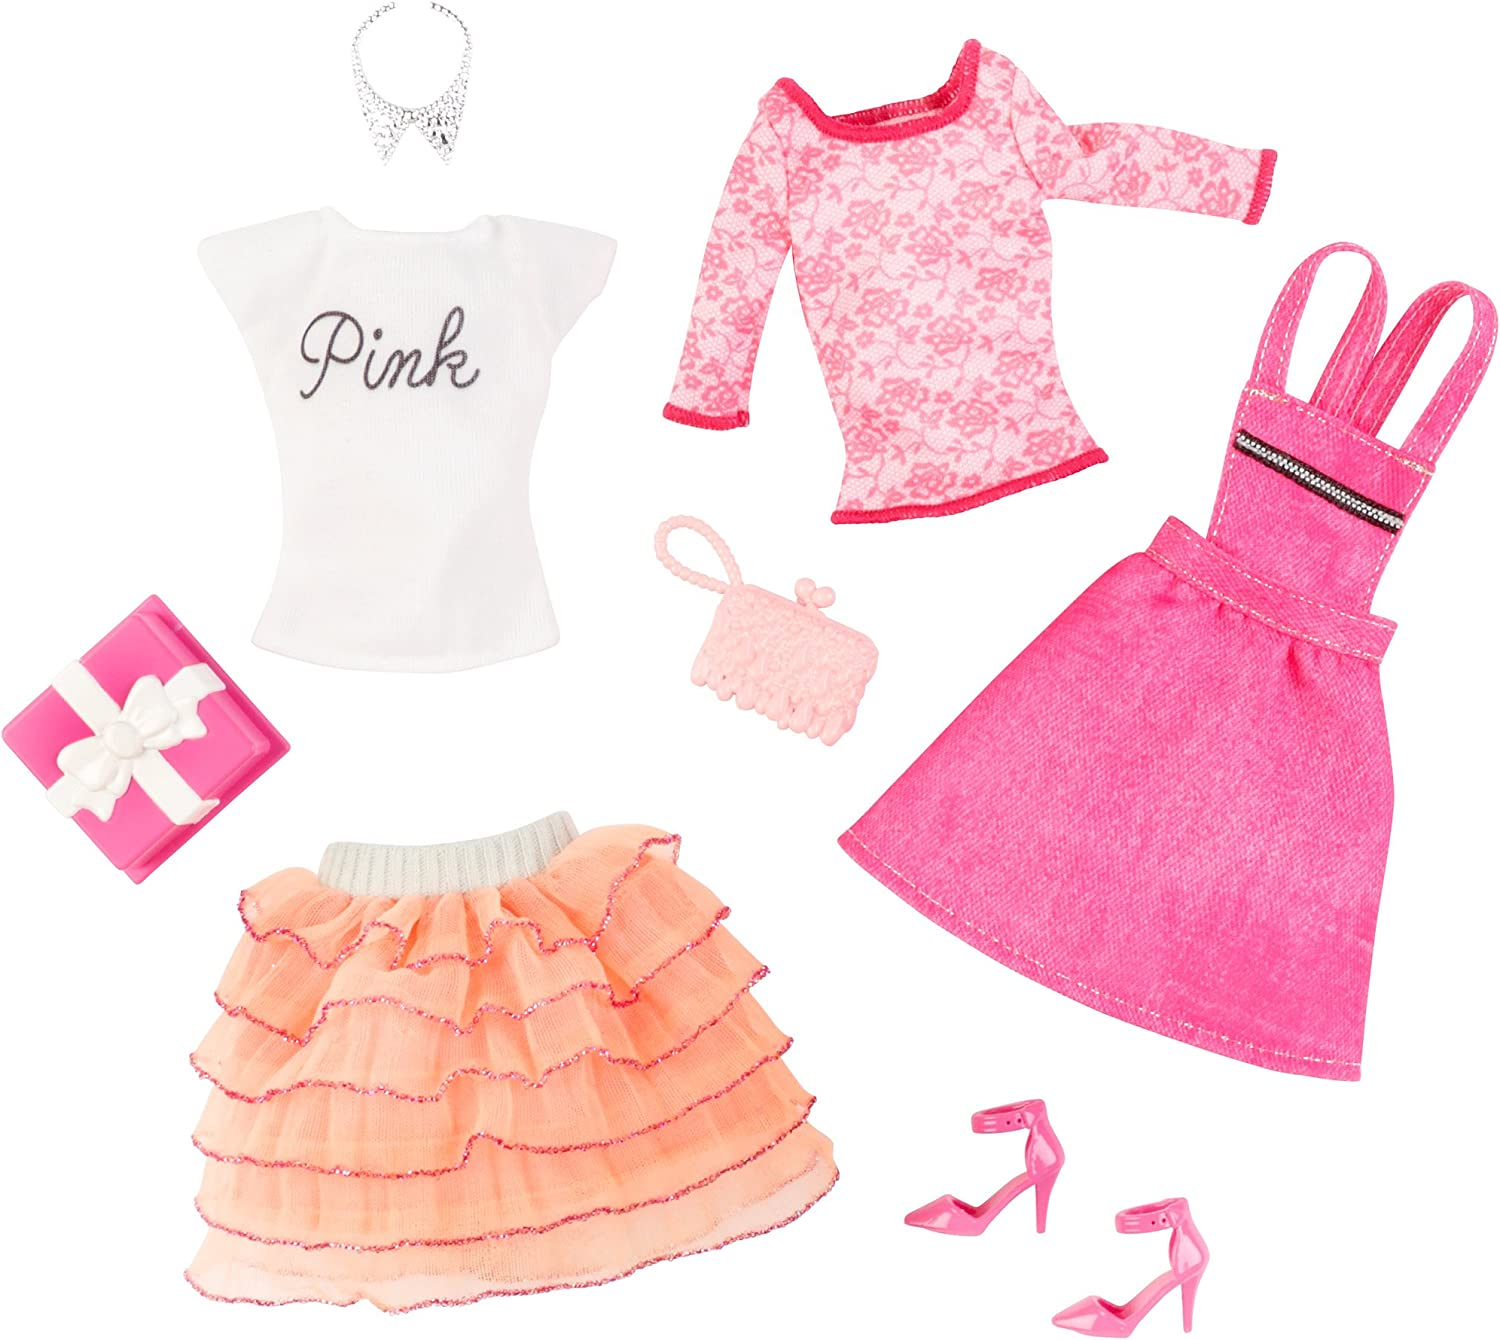 Barbie Fashion komplett Look 2er Pack, Geburtstag Set